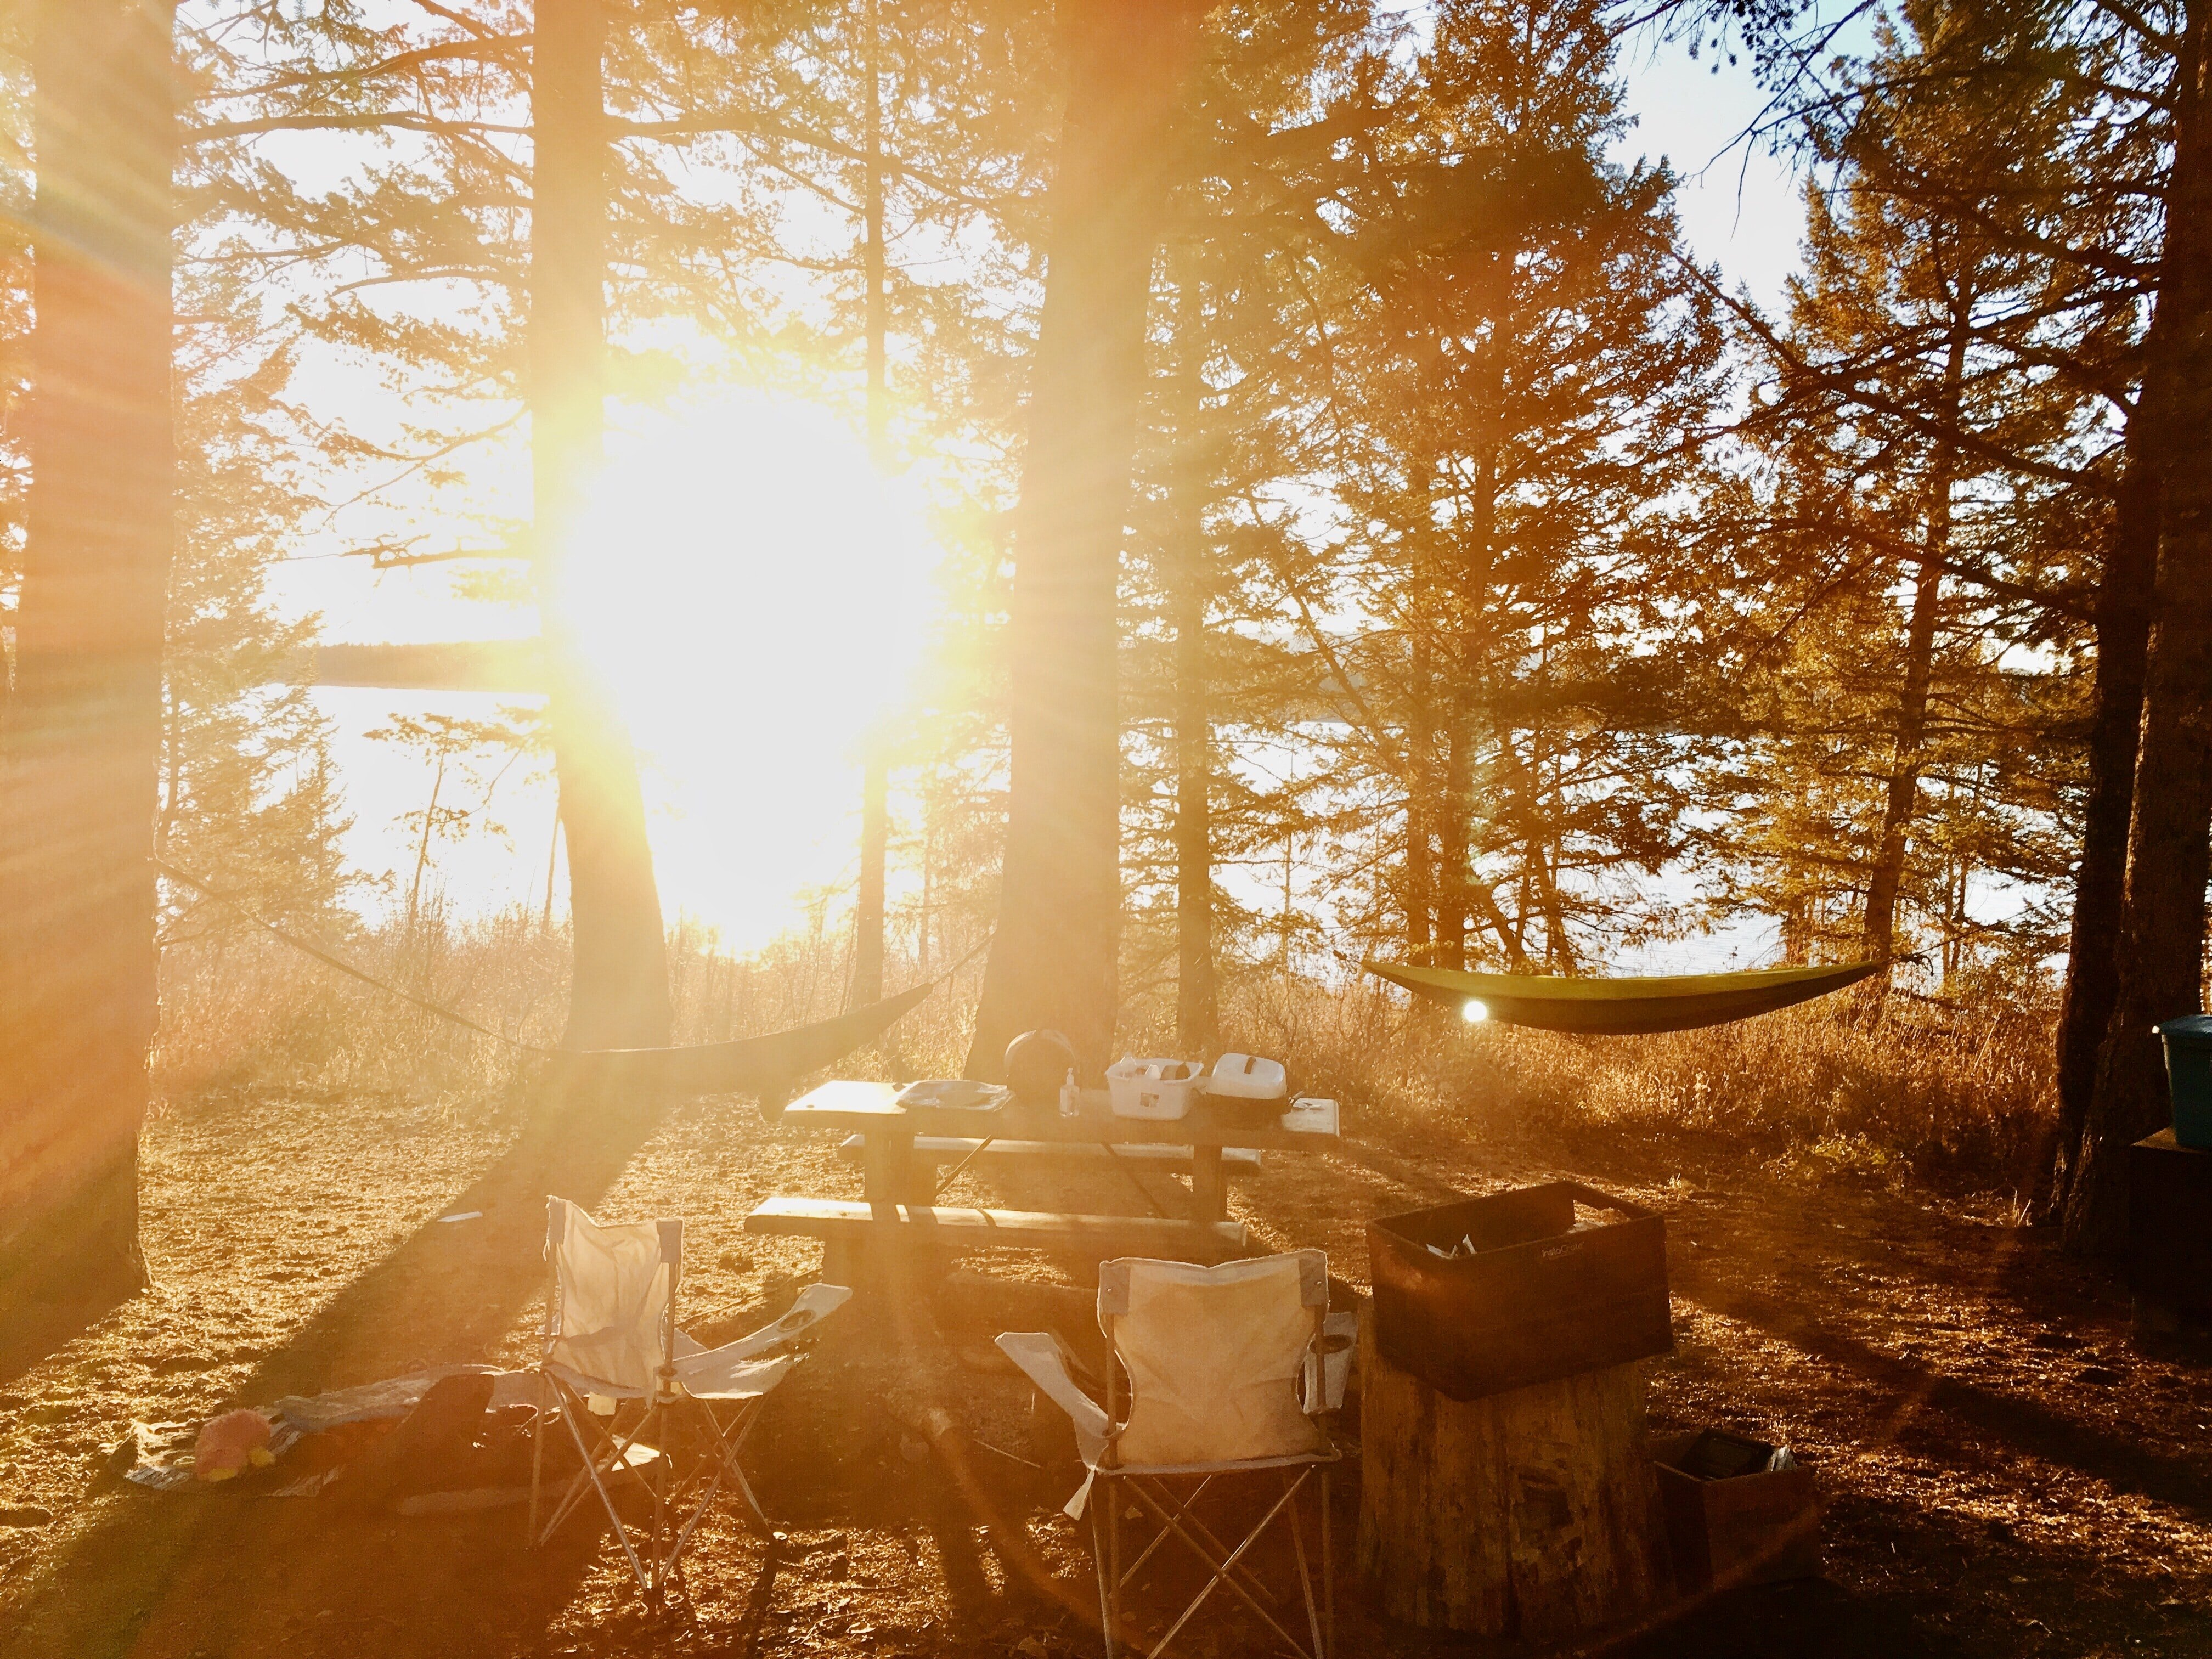 Wildlife Watching and RV Camping